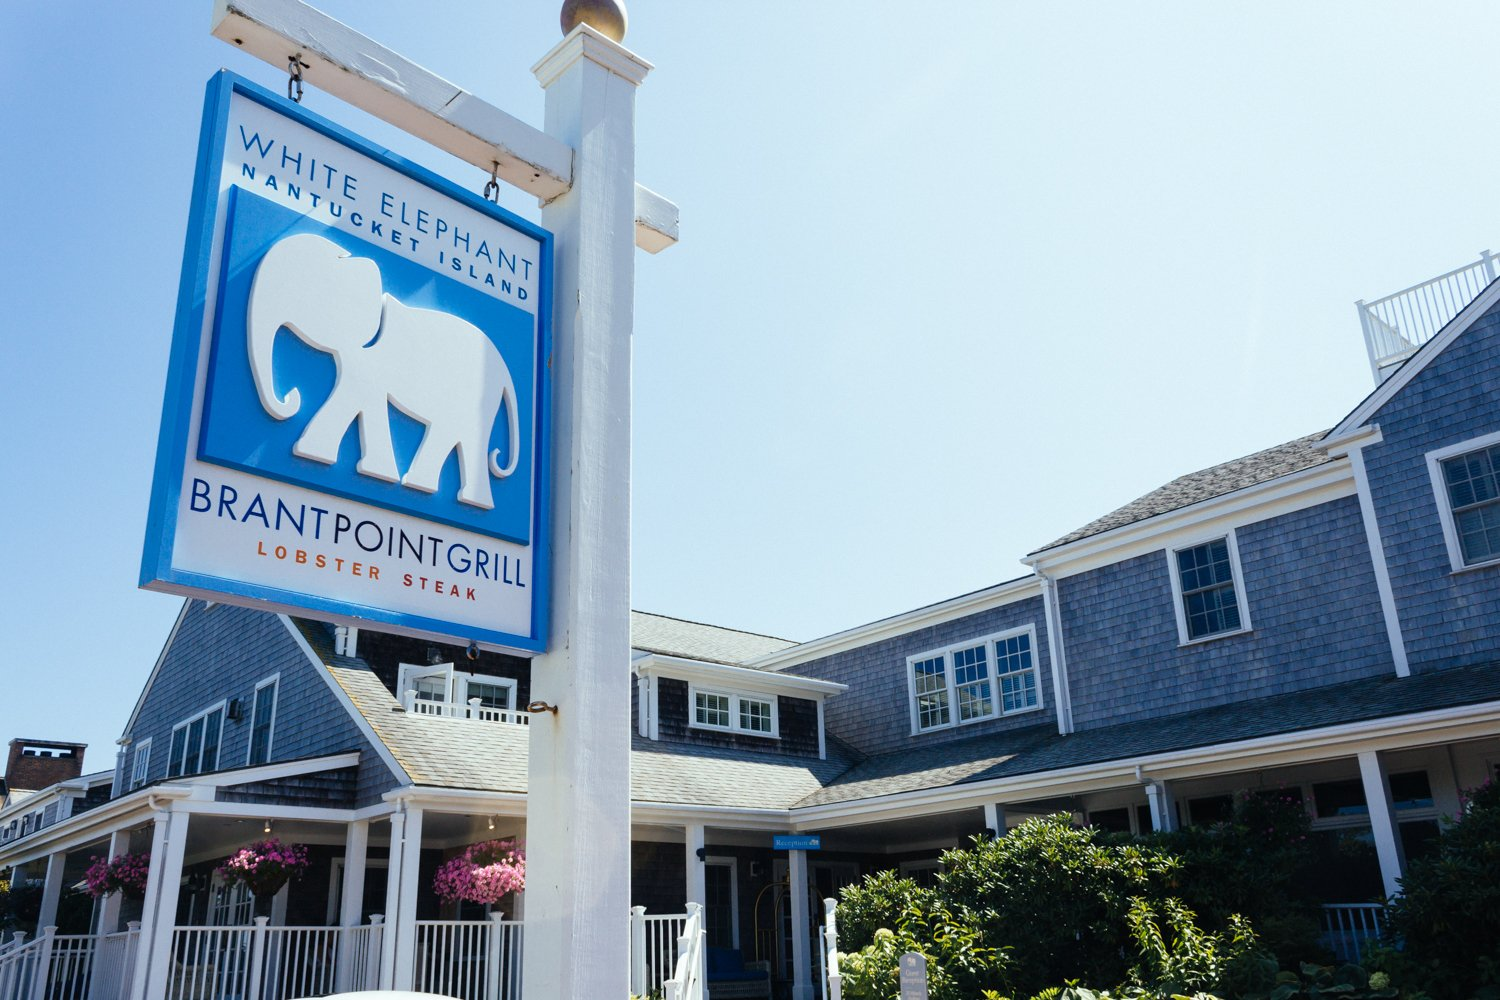 Nantucket Travel Guide | The Stopover by Meaghan Murray | meaghanmurray.com